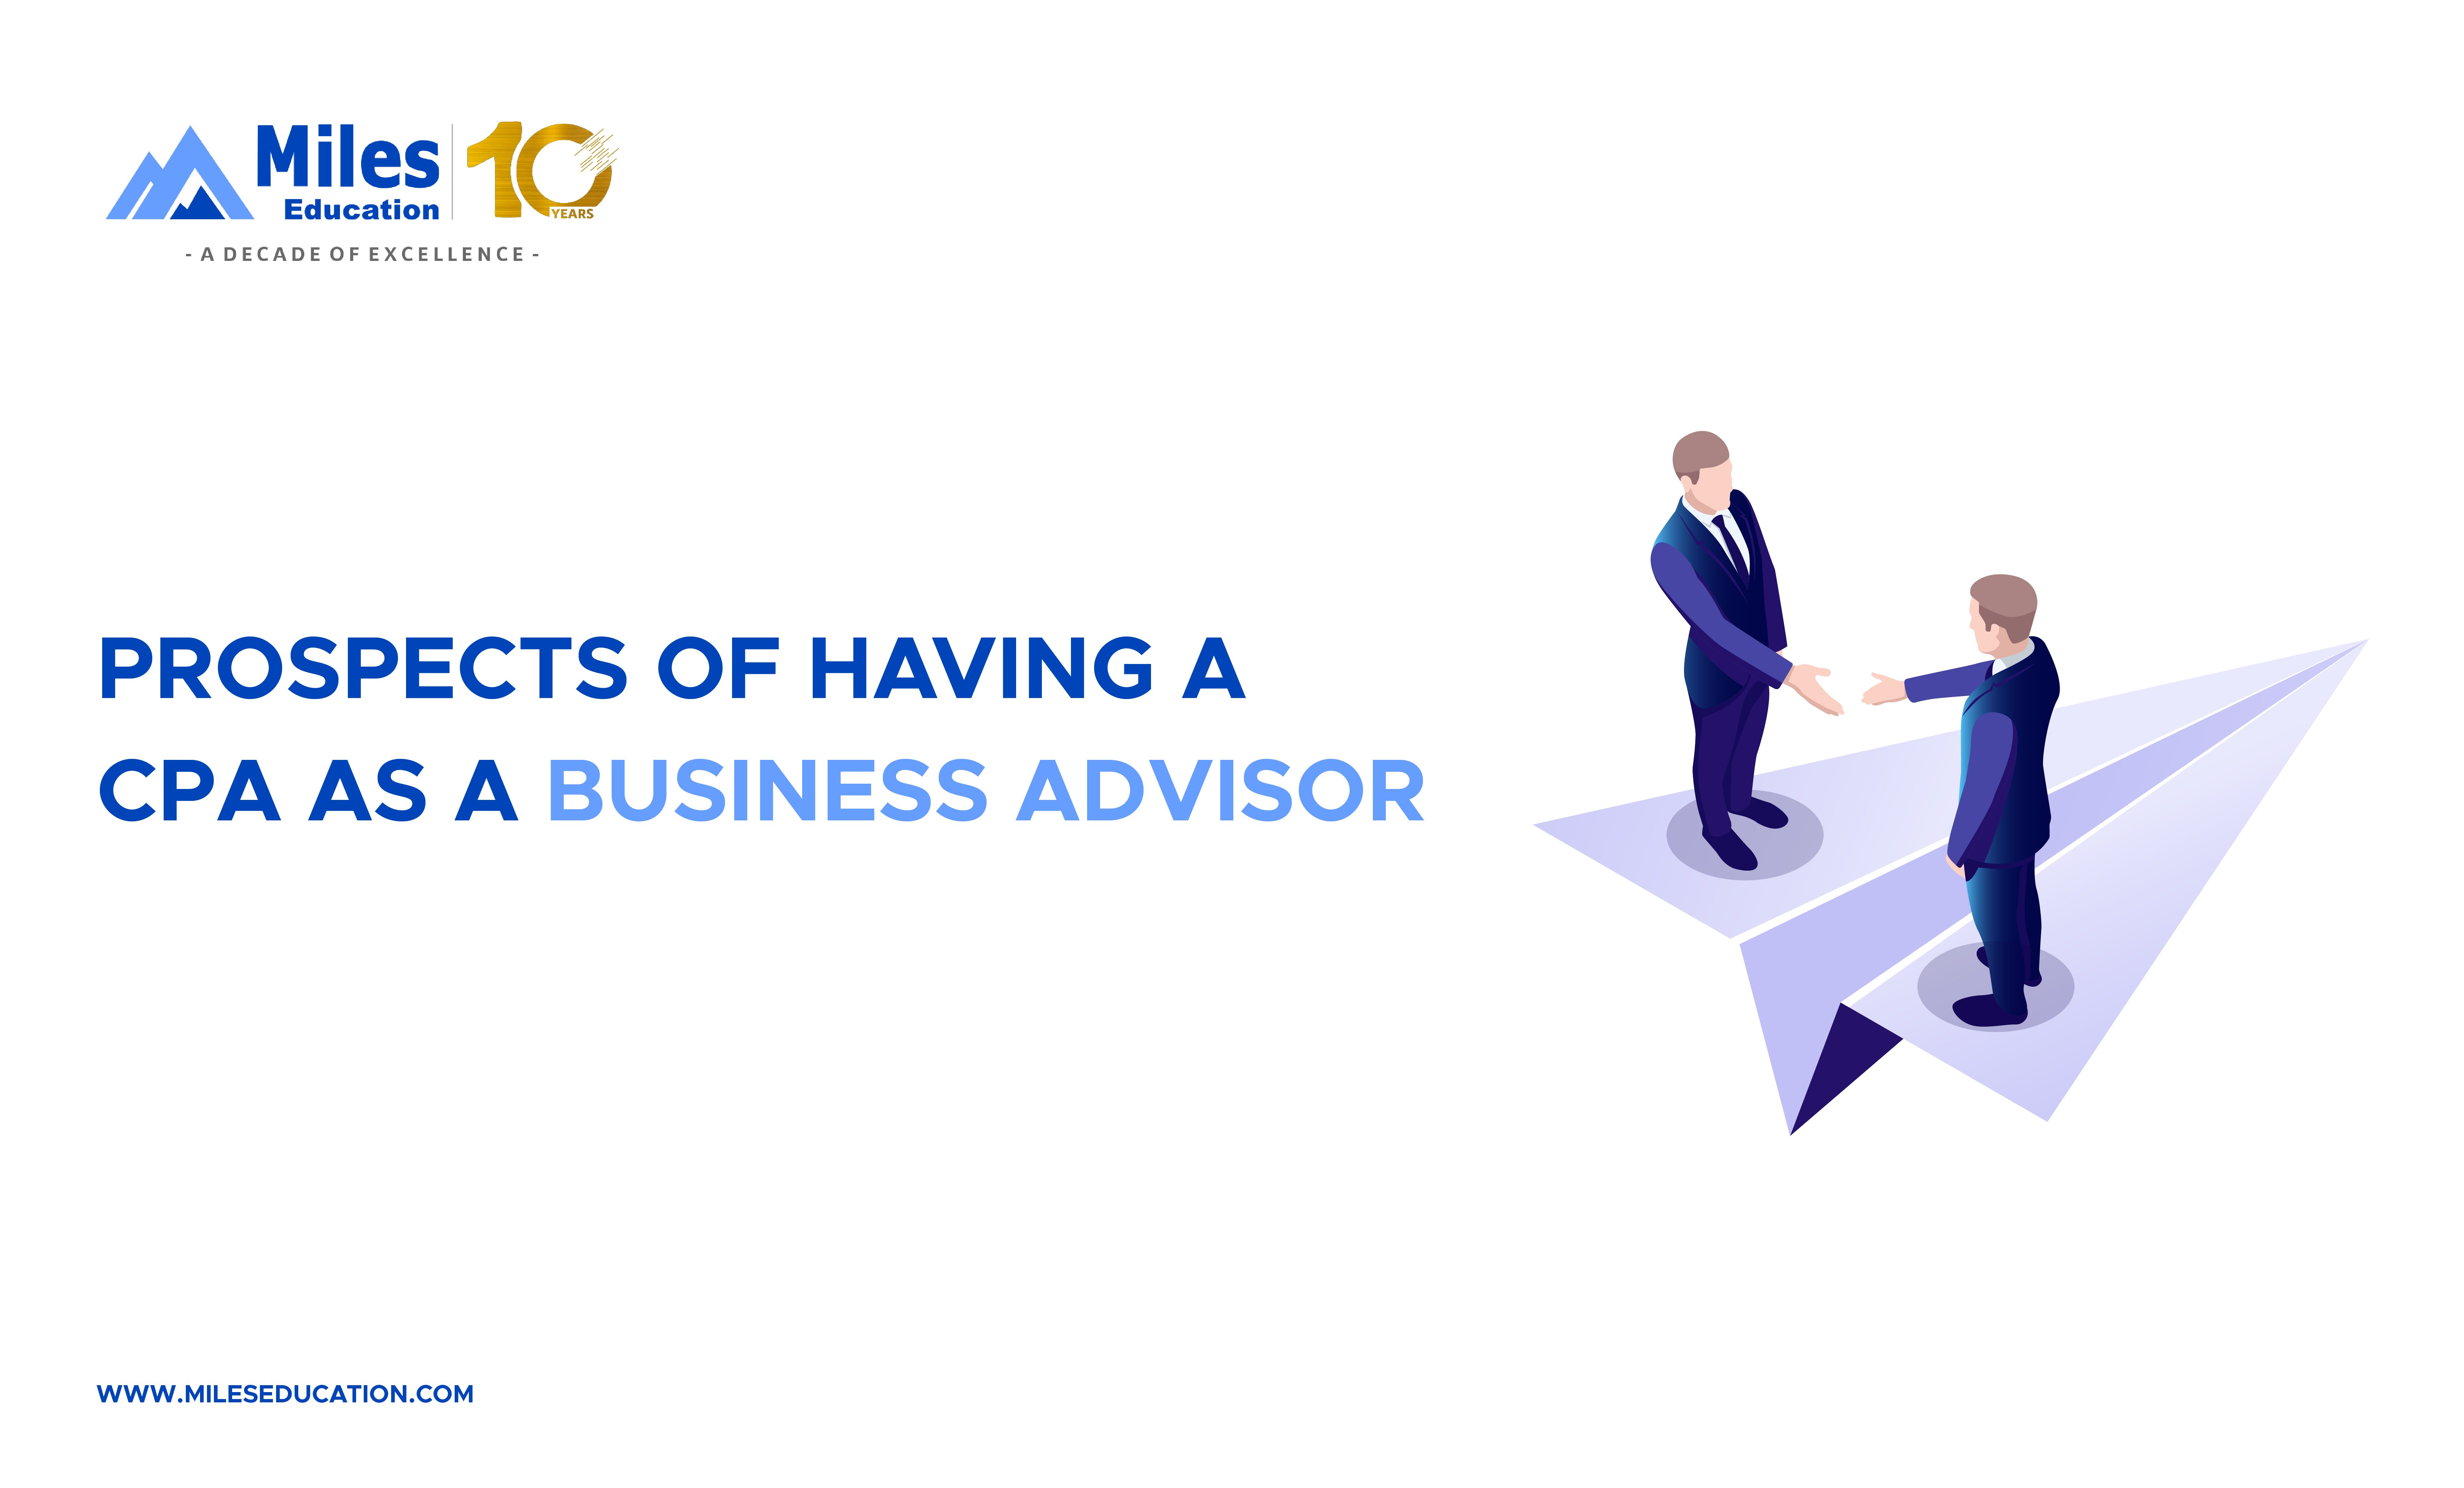 Prospects of having a CPA as a Business Advisor